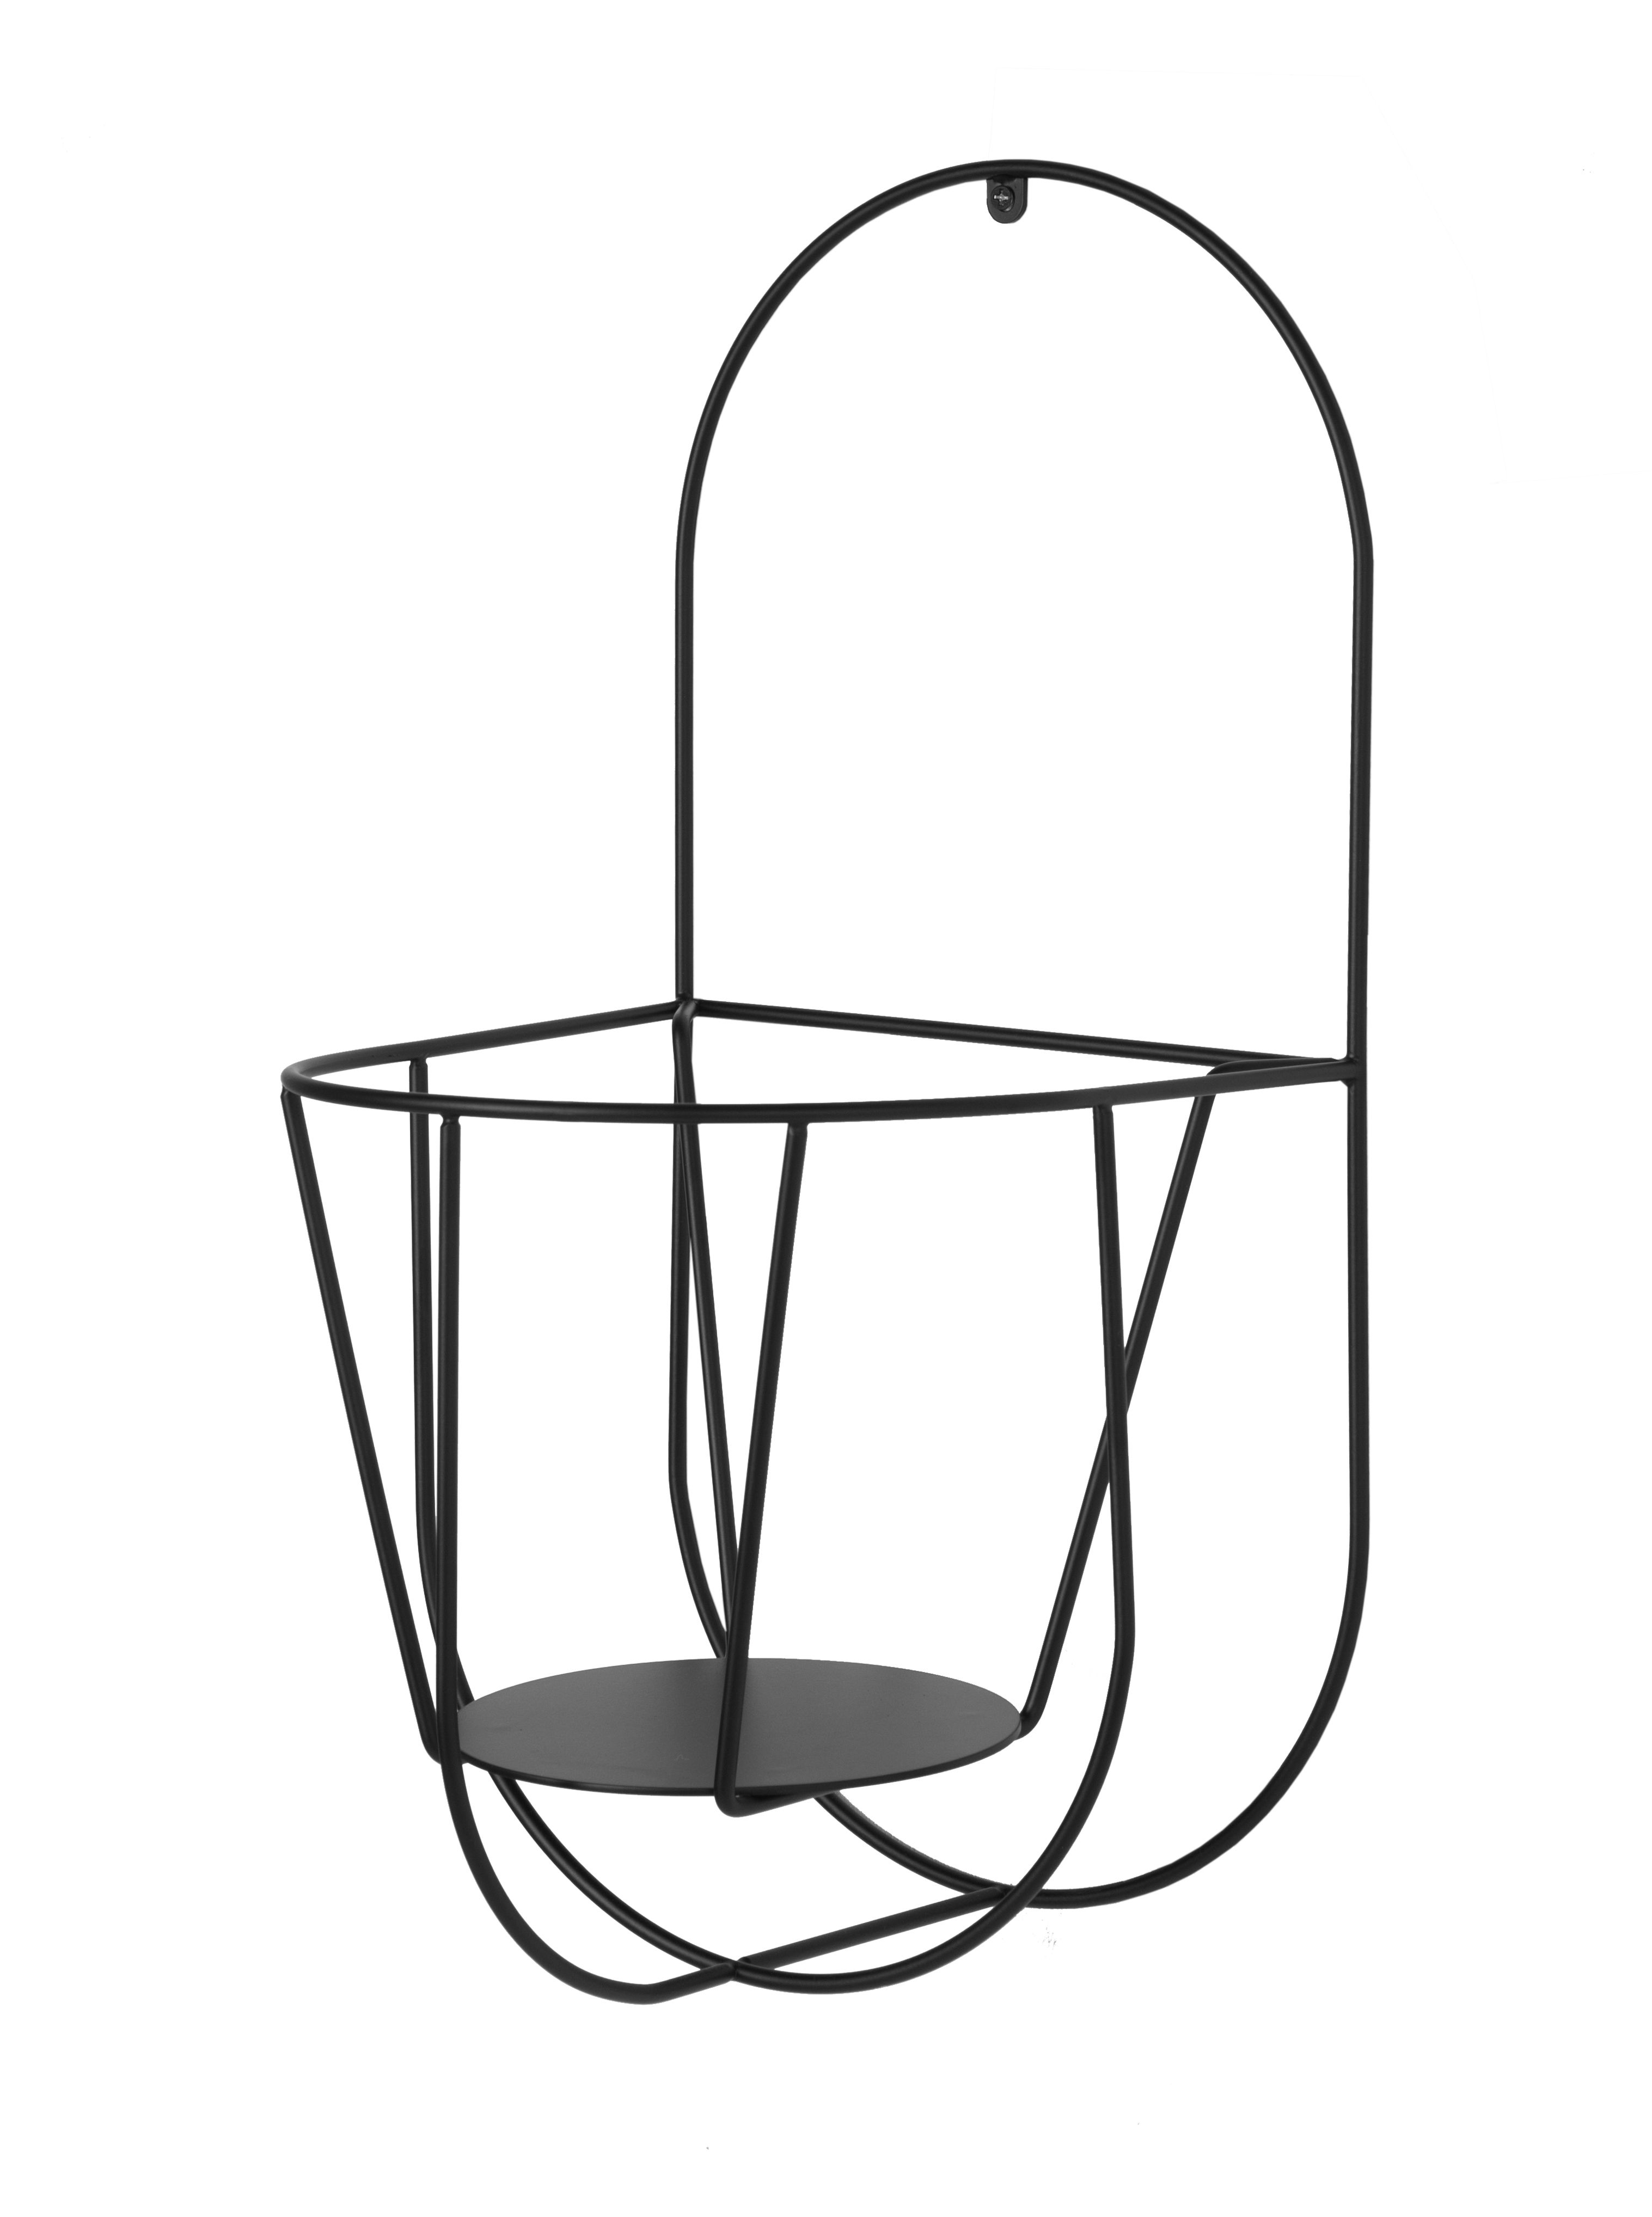 Outdoor - Pots & Plants - Cibele Wall Wall support for flower pots - Wall - H 46 cm by OK Design pour Sentou Edition - Black - Metal